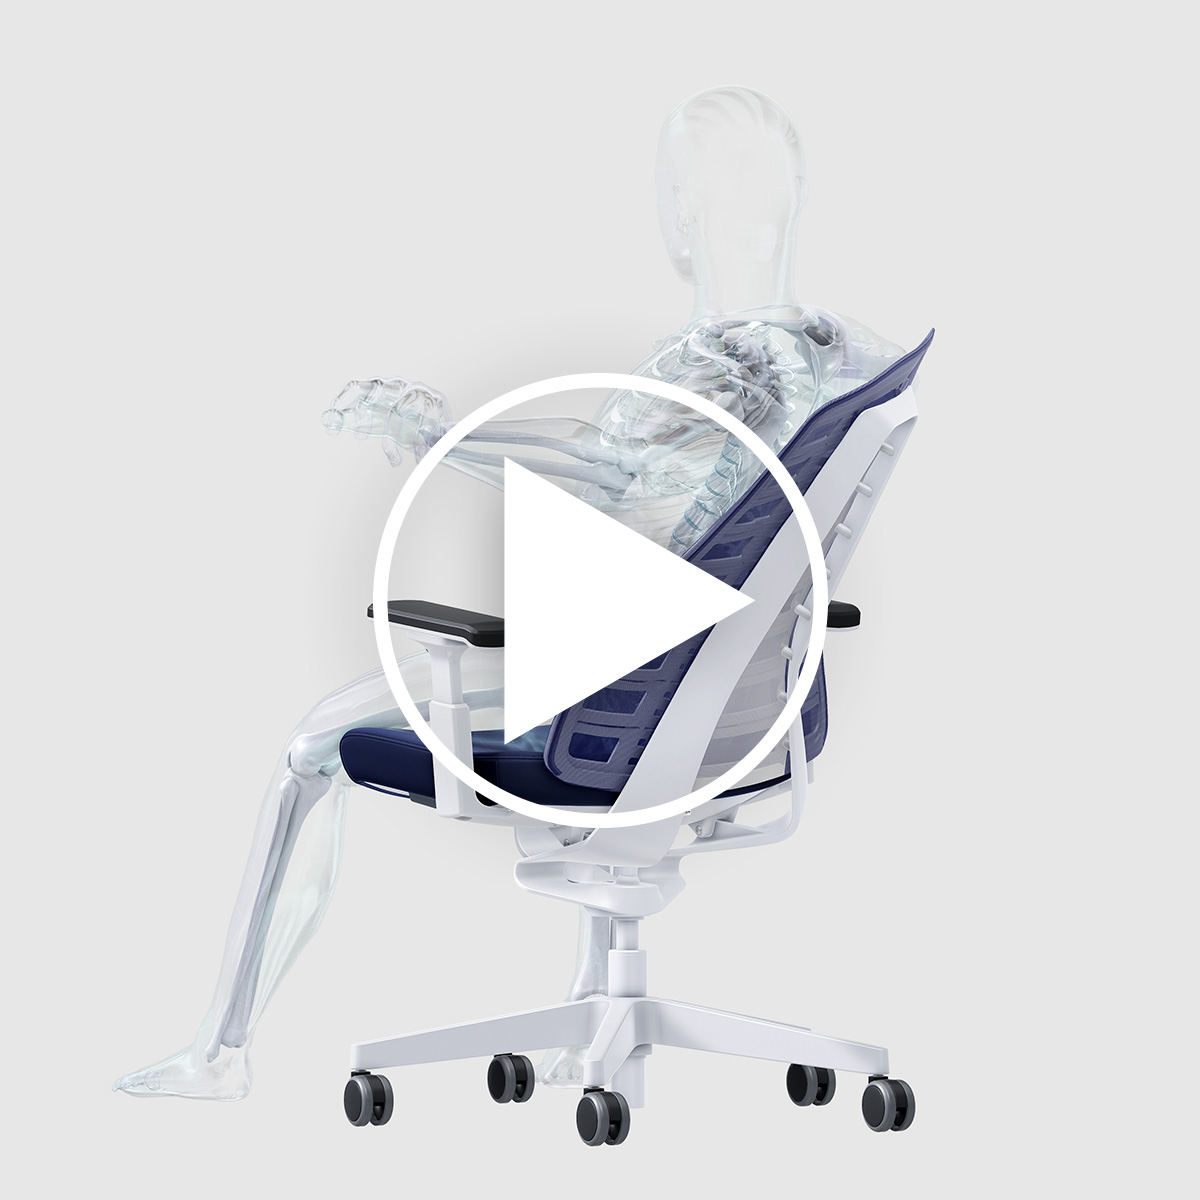 Video showing the three factors promoting the users' own health and ergonomics by means of a person on the PURE desk chair.